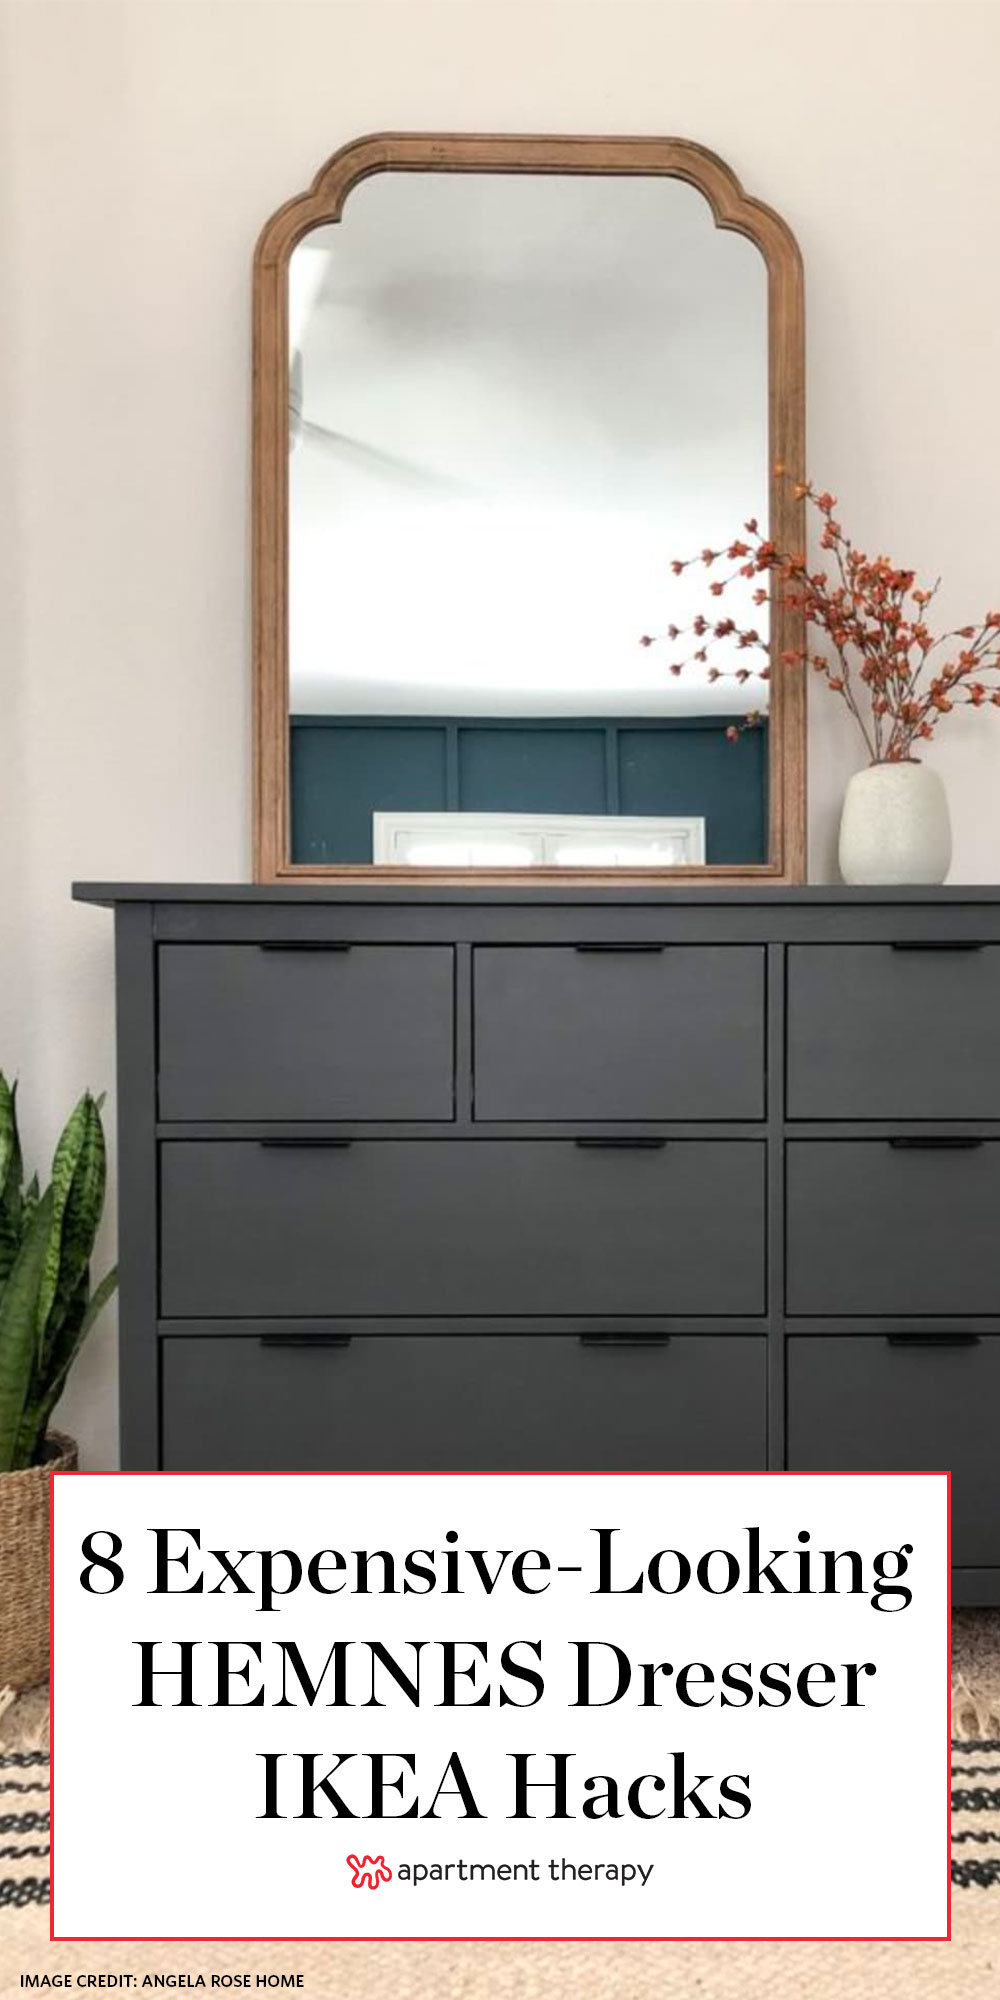 Ikea Diy Dresser Hacks Ikea Hemnes Dresser Hacks Apartment Therapy